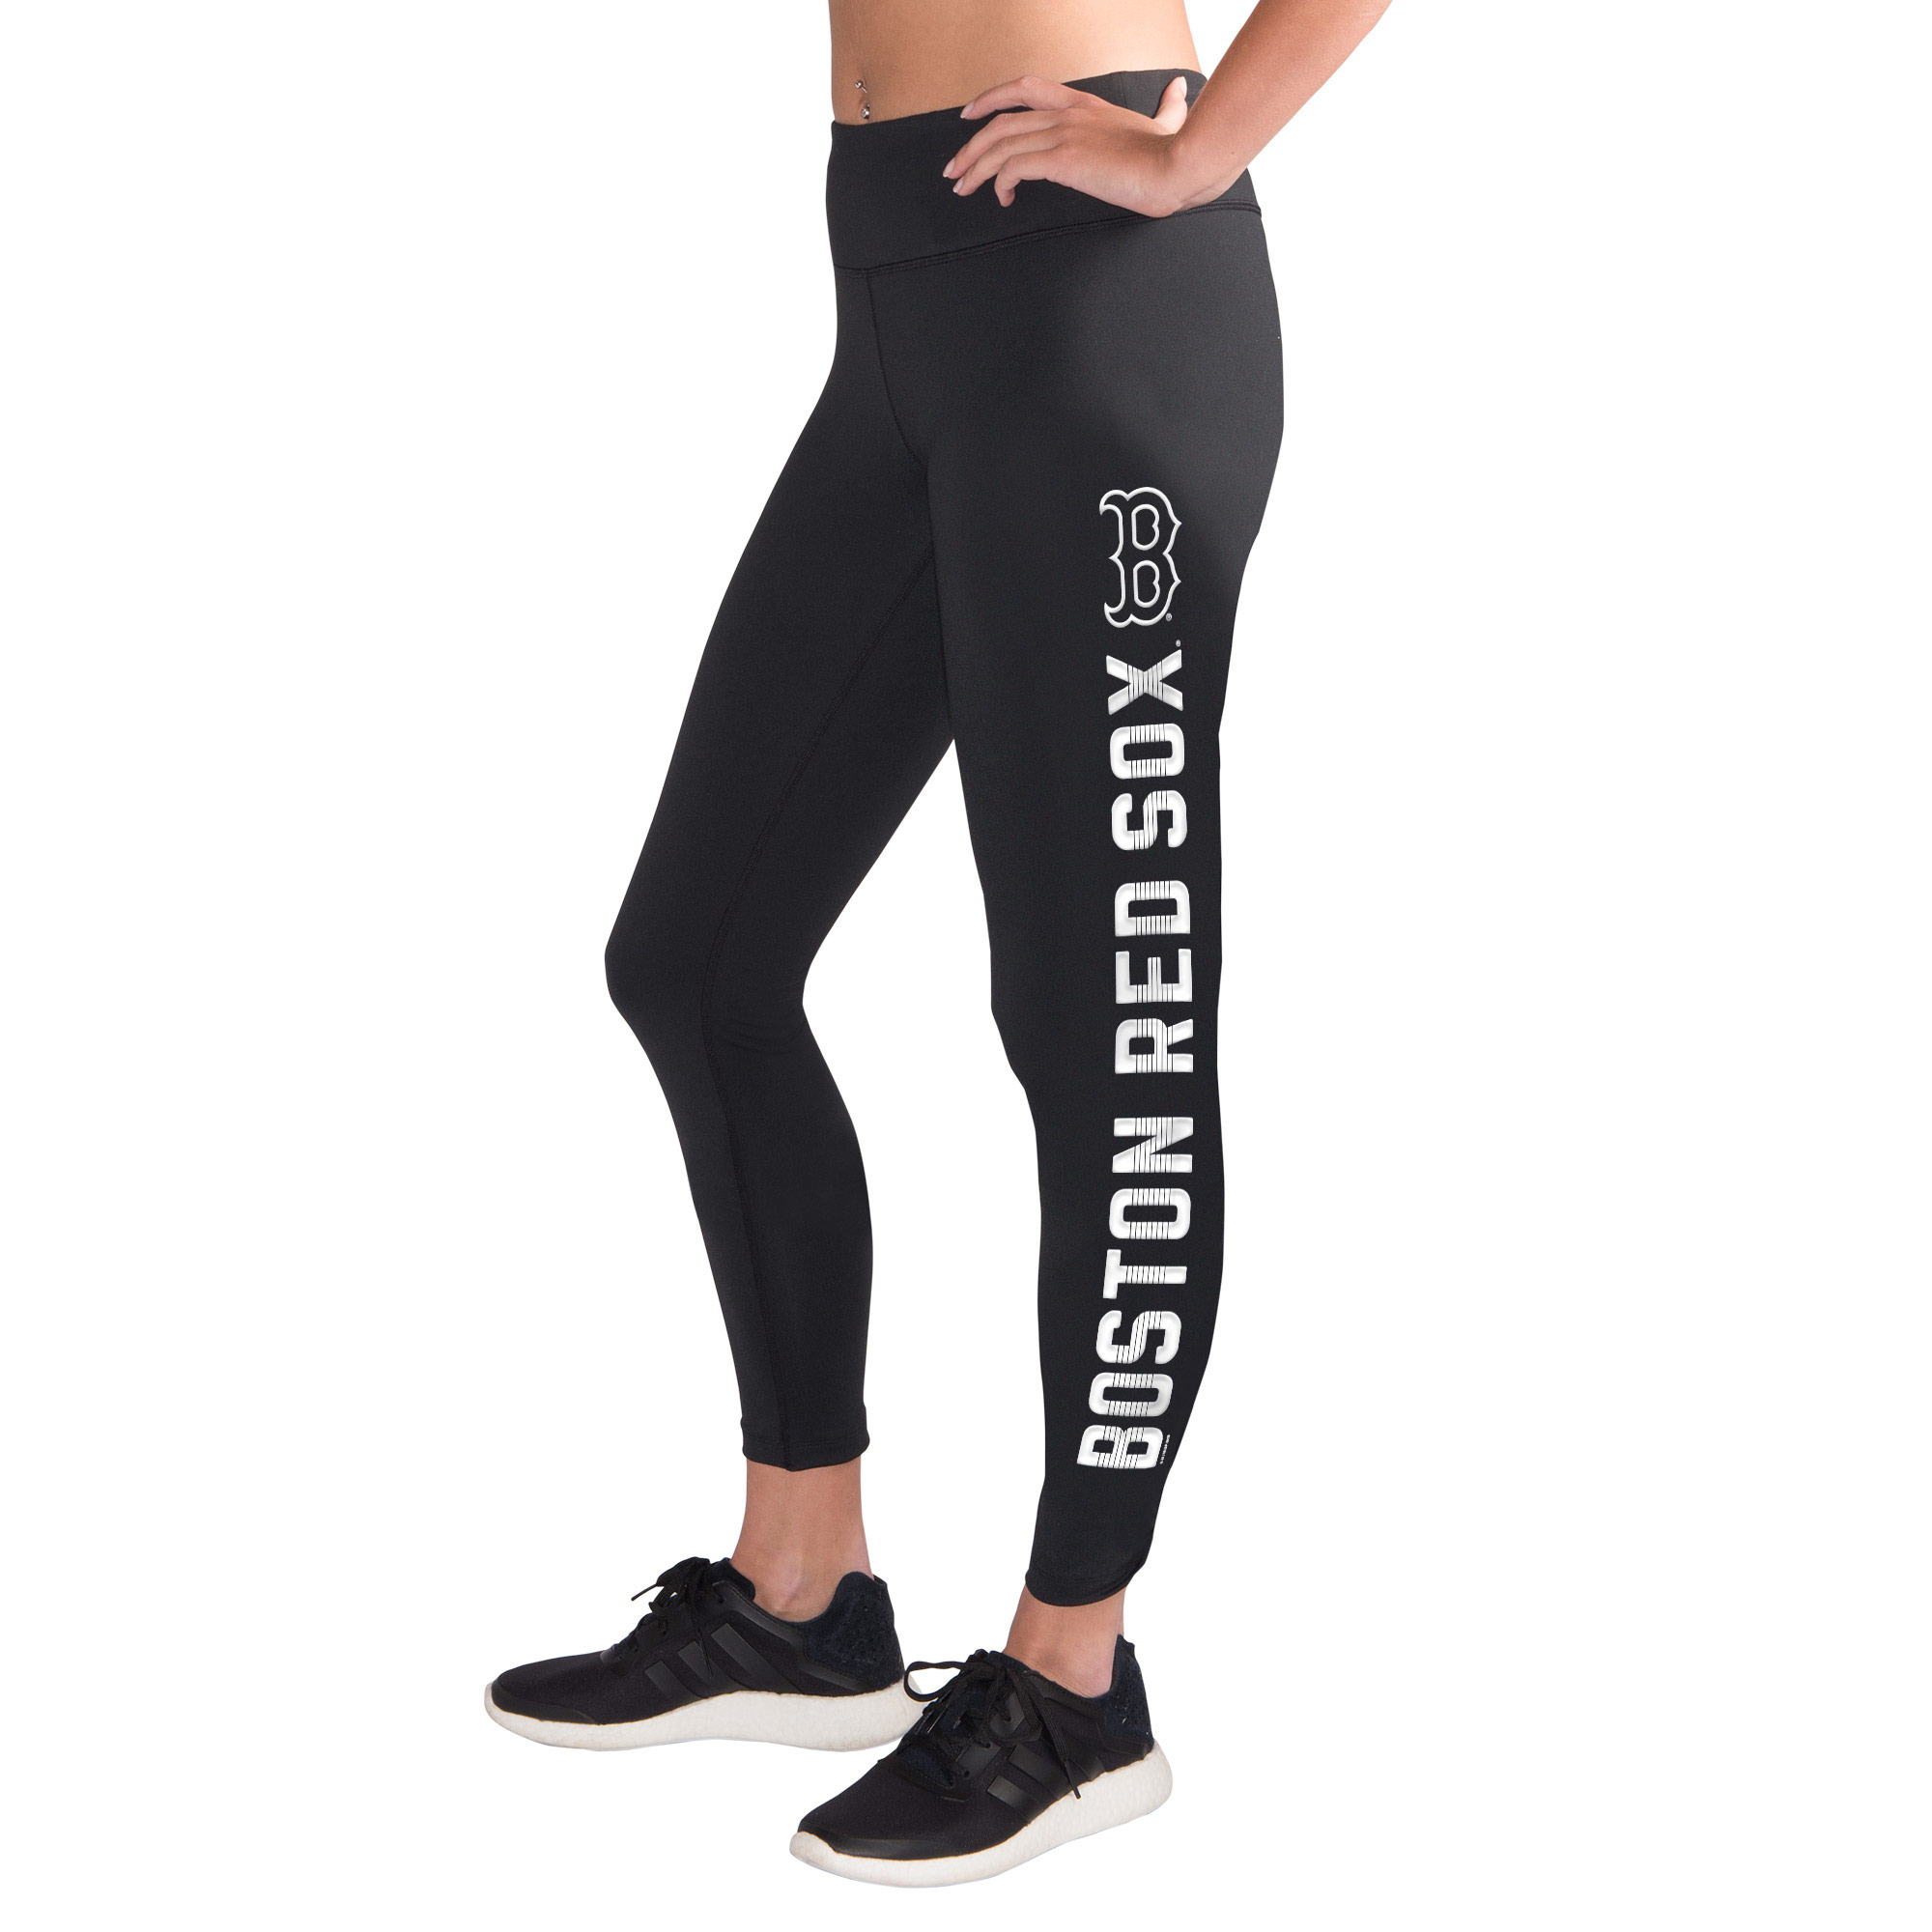 Boston Red Sox G-III 4Her by Carl Banks Women's Base Runner Leggings Black by G-III LEATHER FASHIONS INC